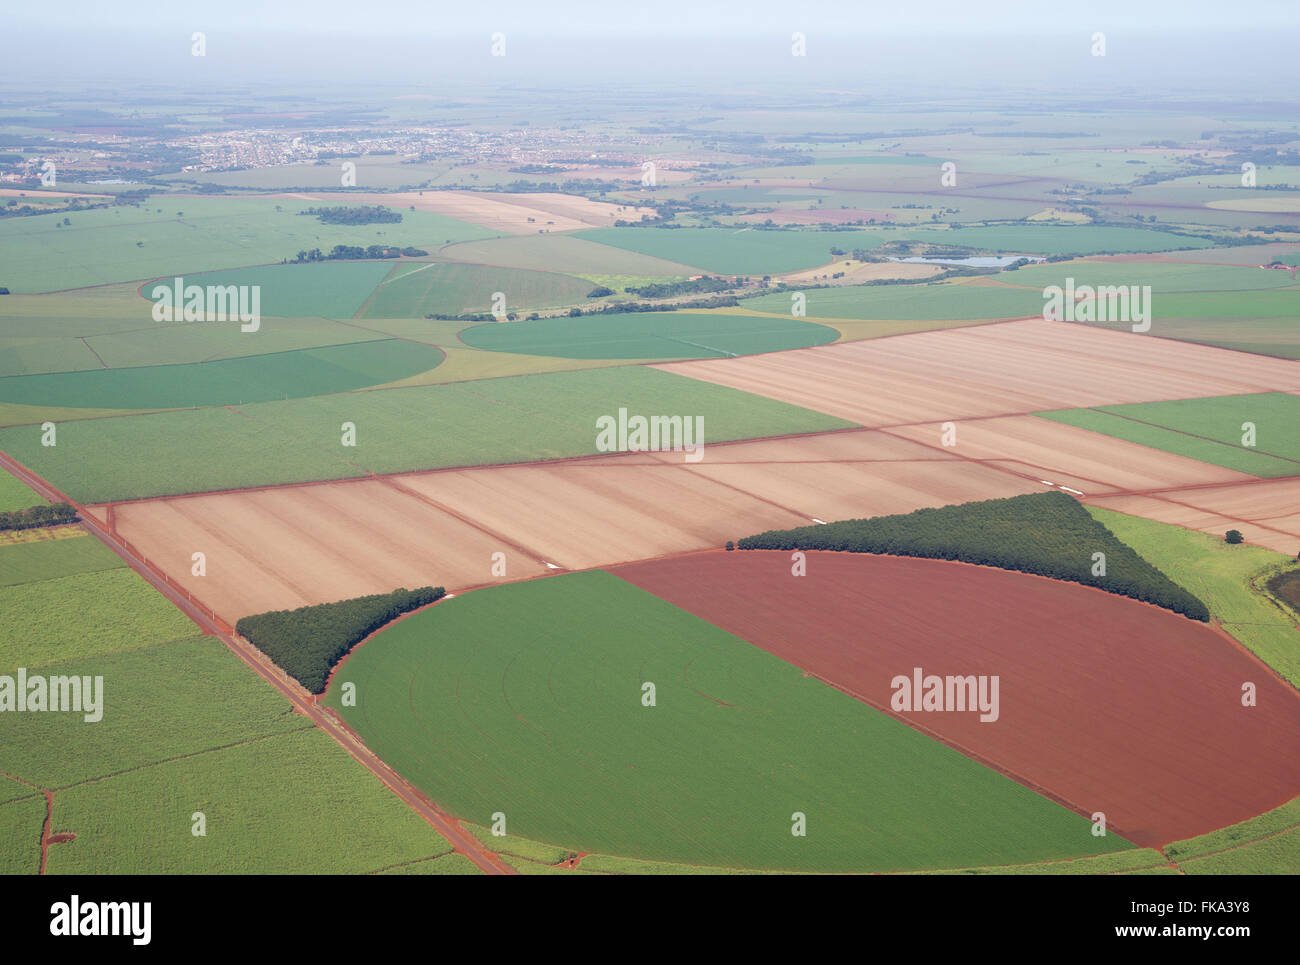 Aerial view of plantation of maize under central pivot irrigation - Stock Image